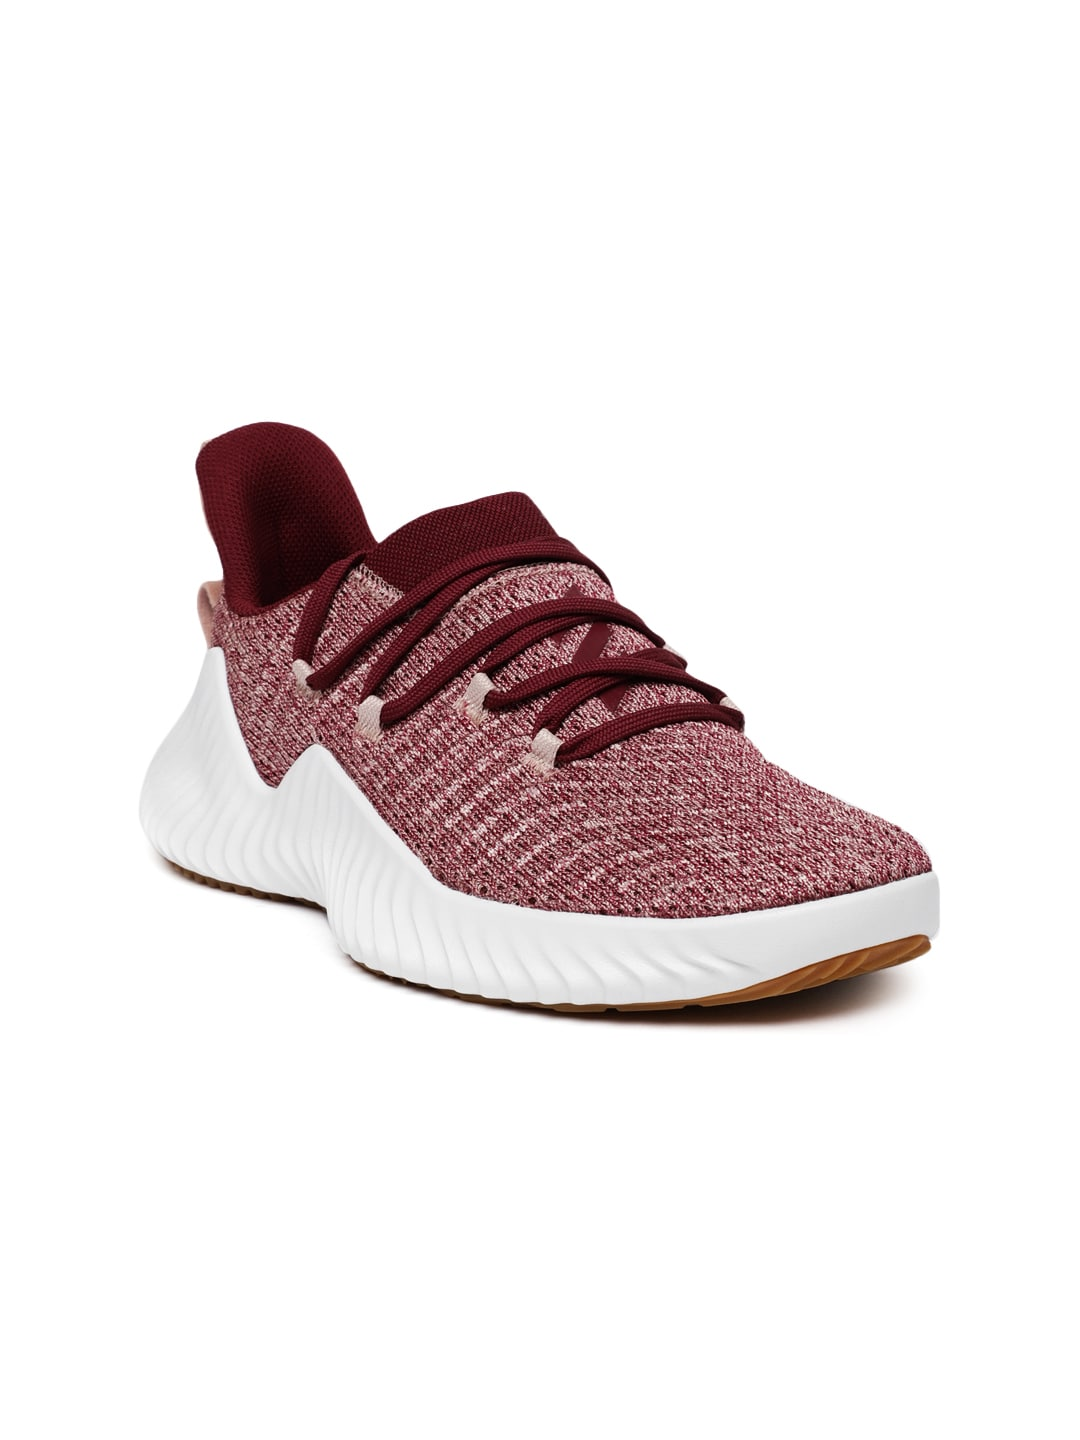 fd3ebcf10380 Alphabounce - Buy Alphabounce online in India